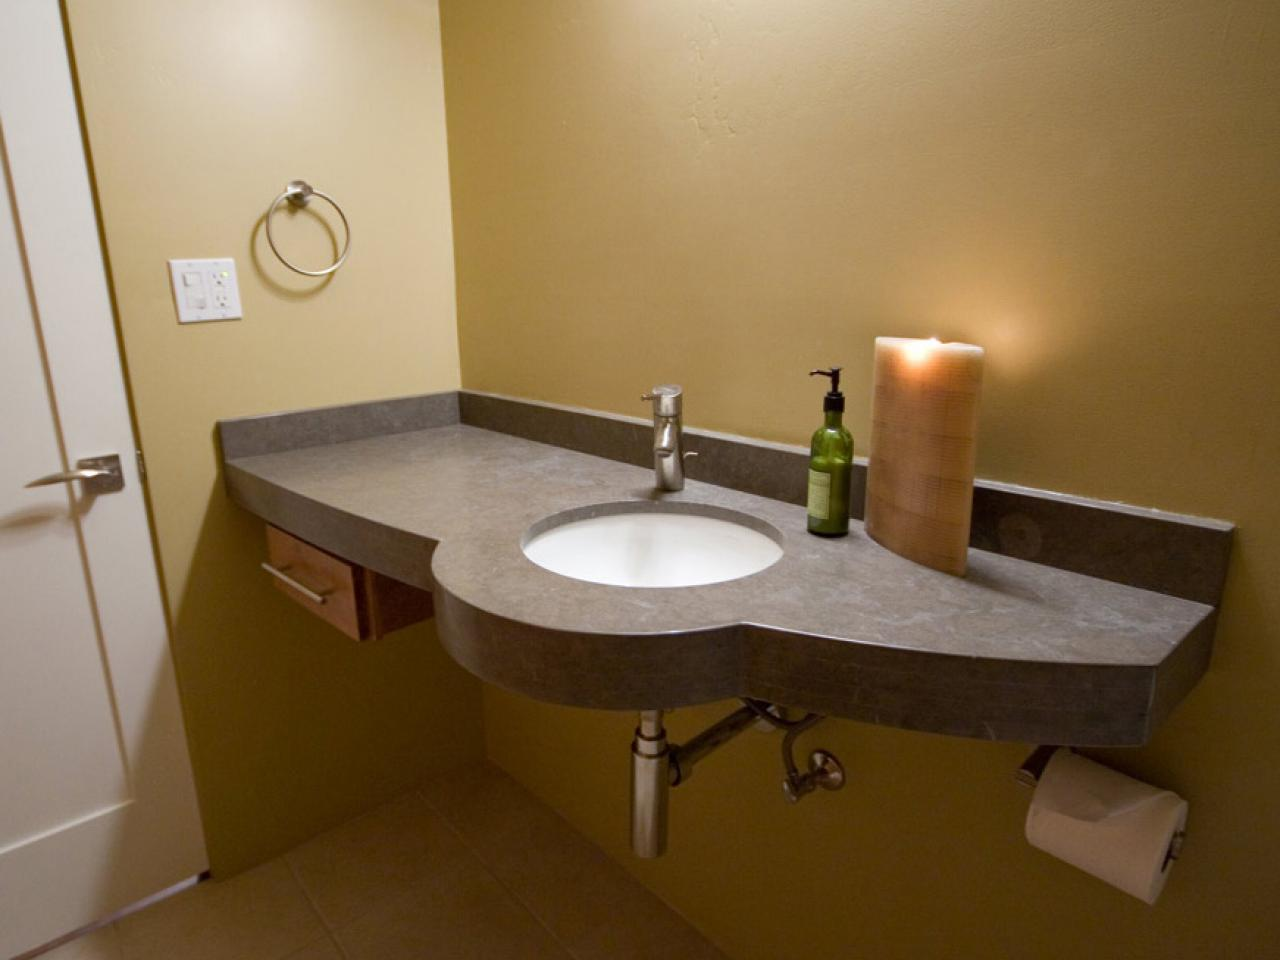 wallmount sinks